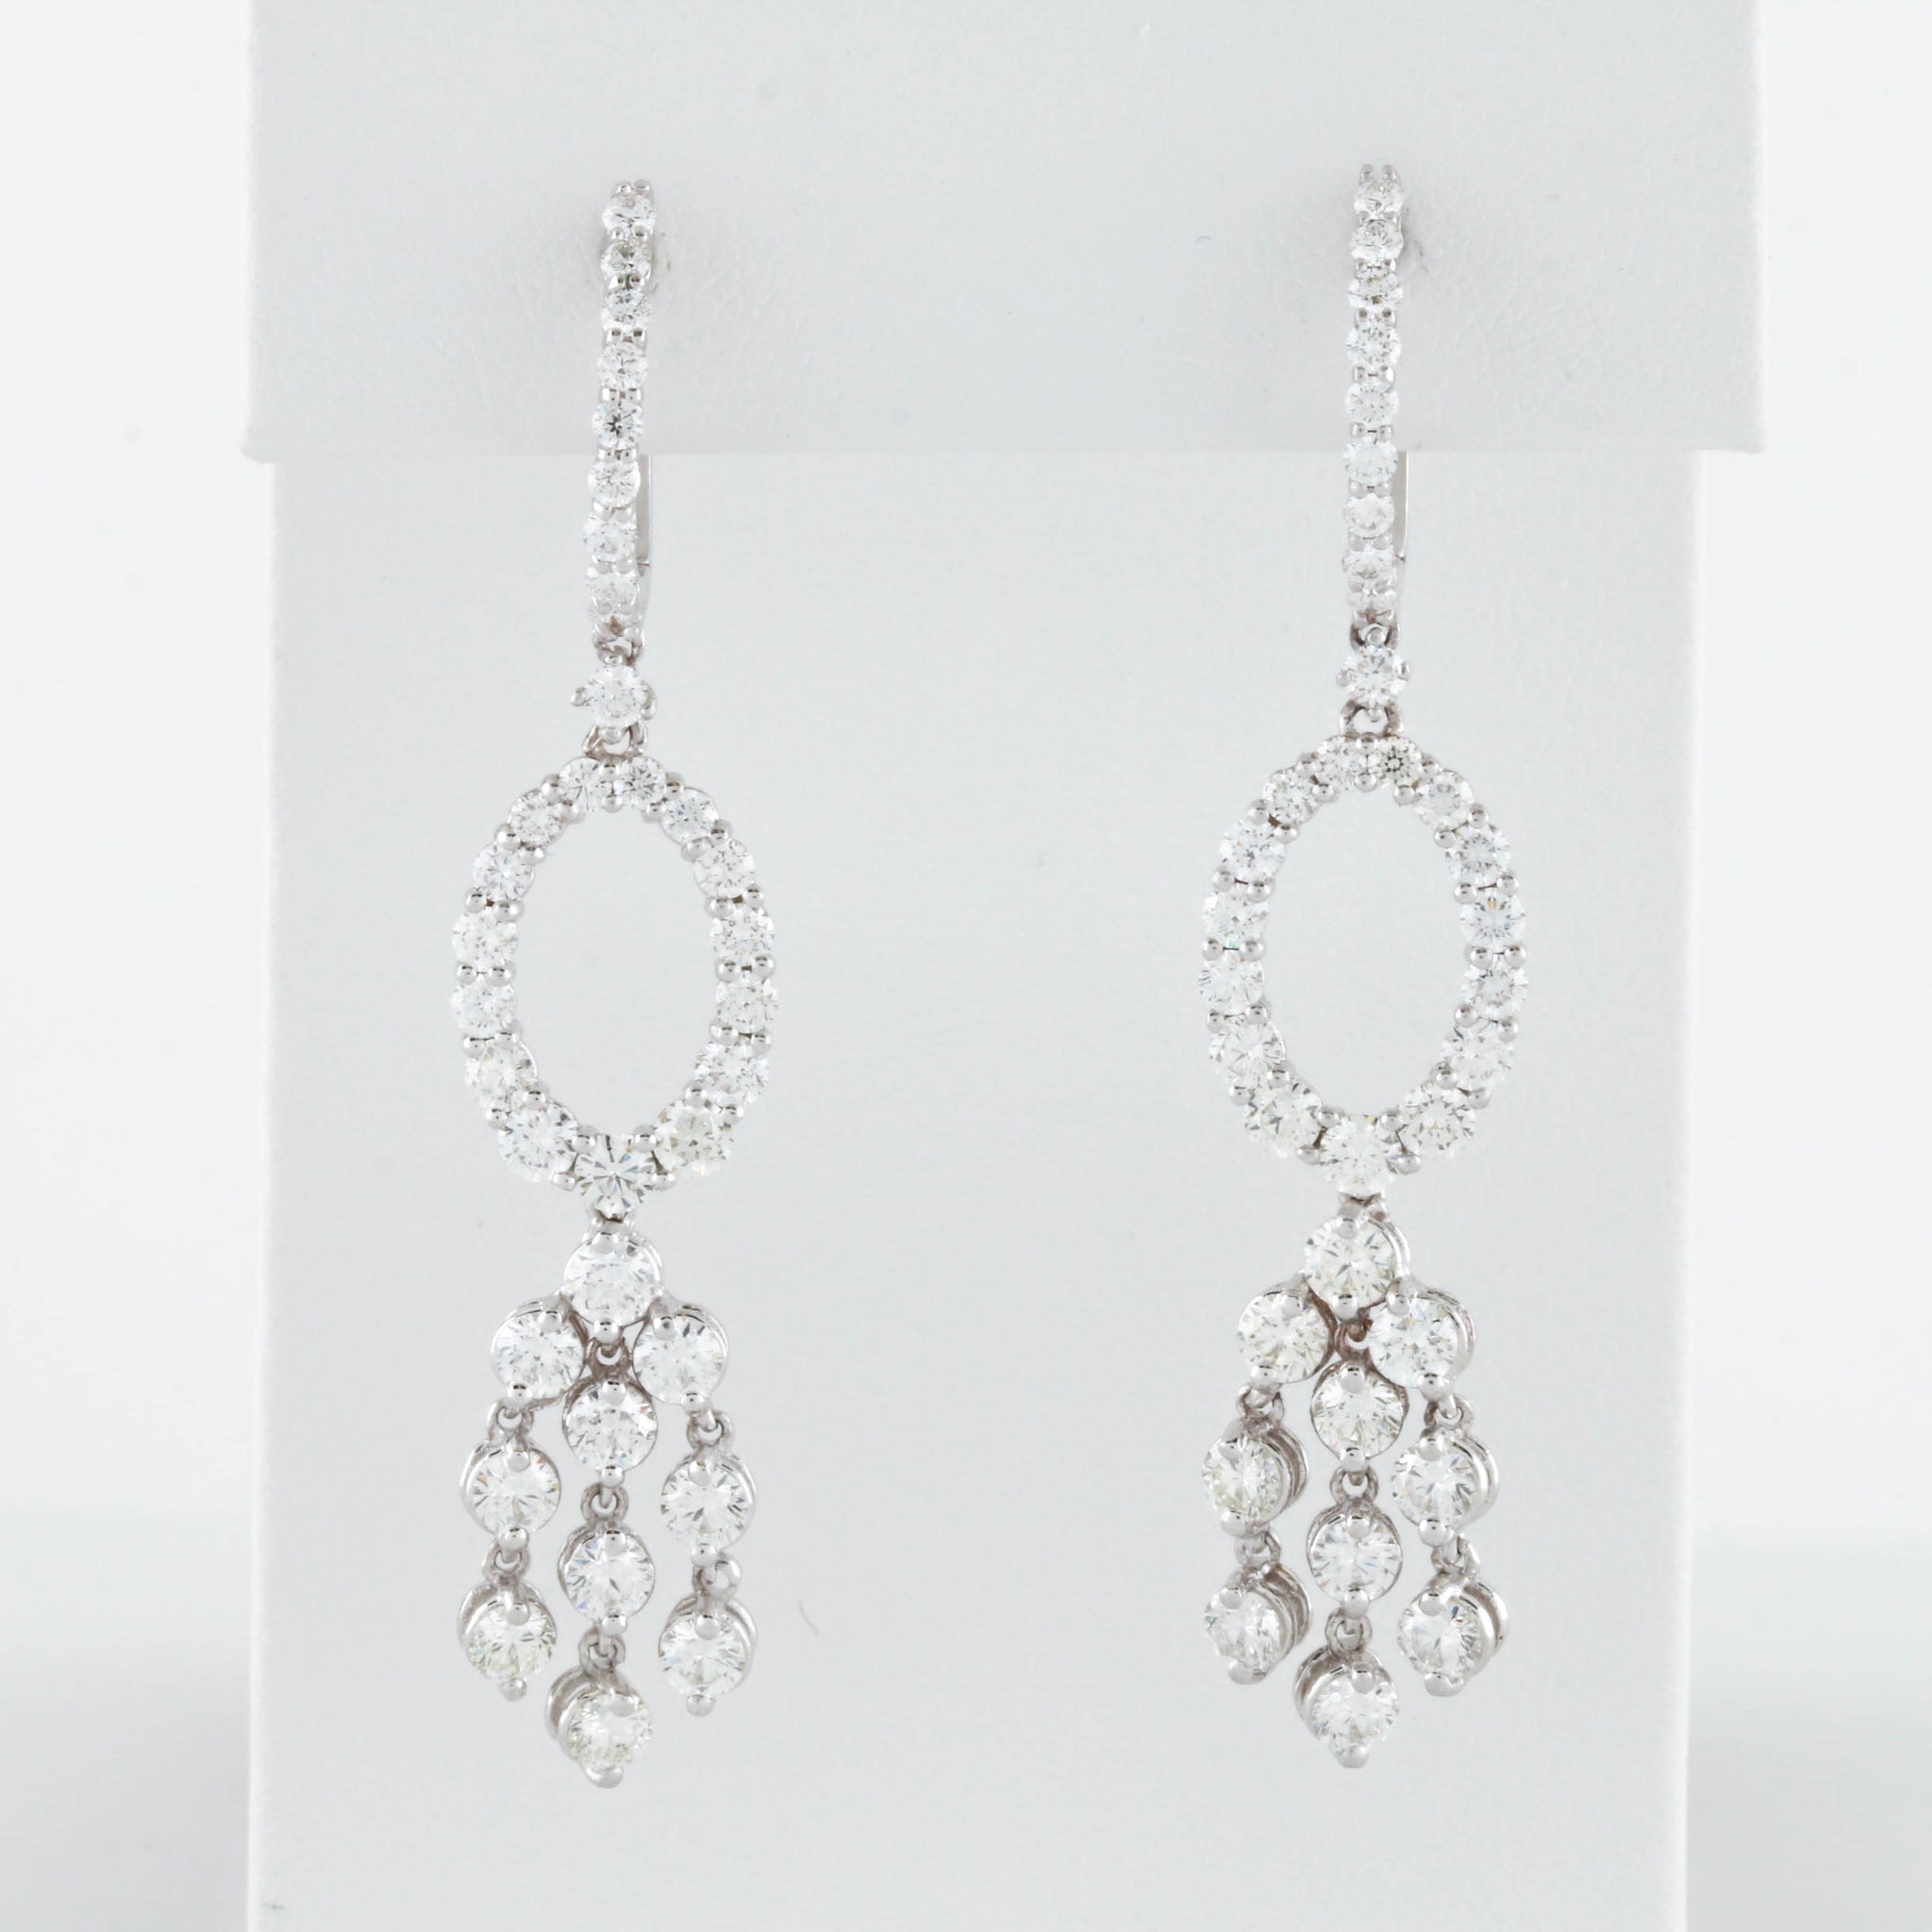 *SOLD* Diamonds in White Gold Oval Dangle Earrings - Sindur